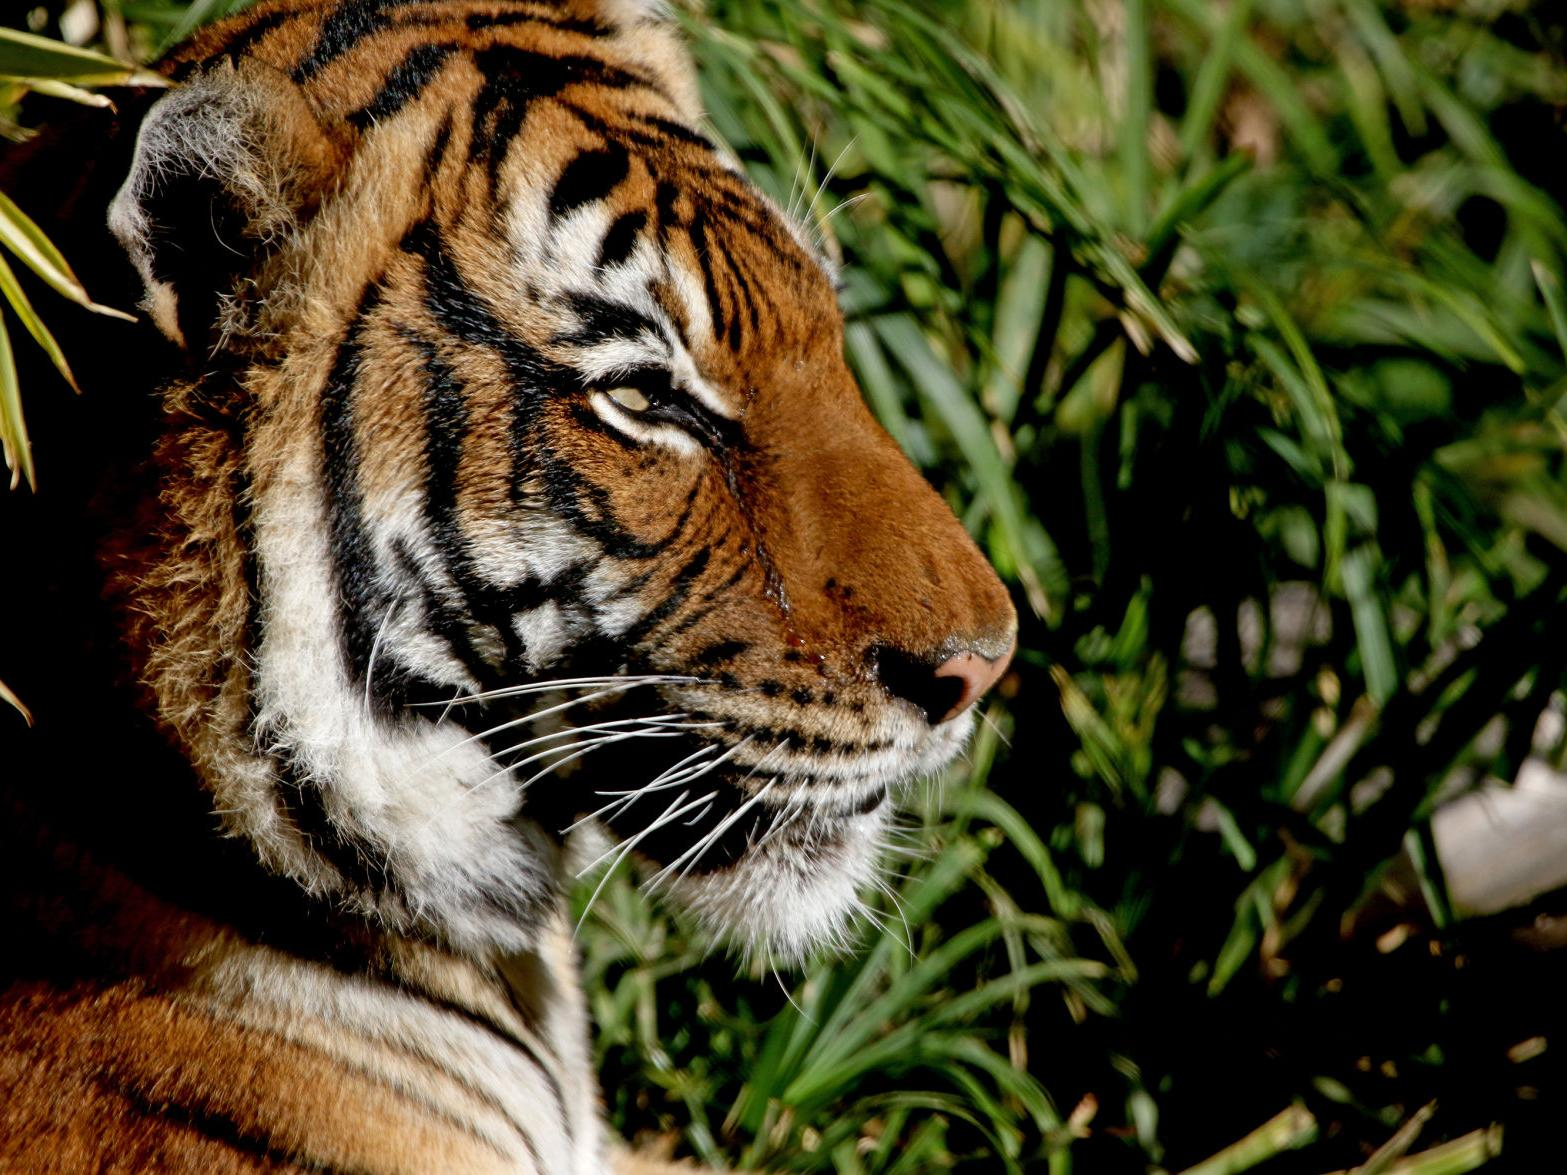 Tiger At Tucson S Reid Park Zoo Euthanized After Kidney Disease Progresses Local News Tucson Com